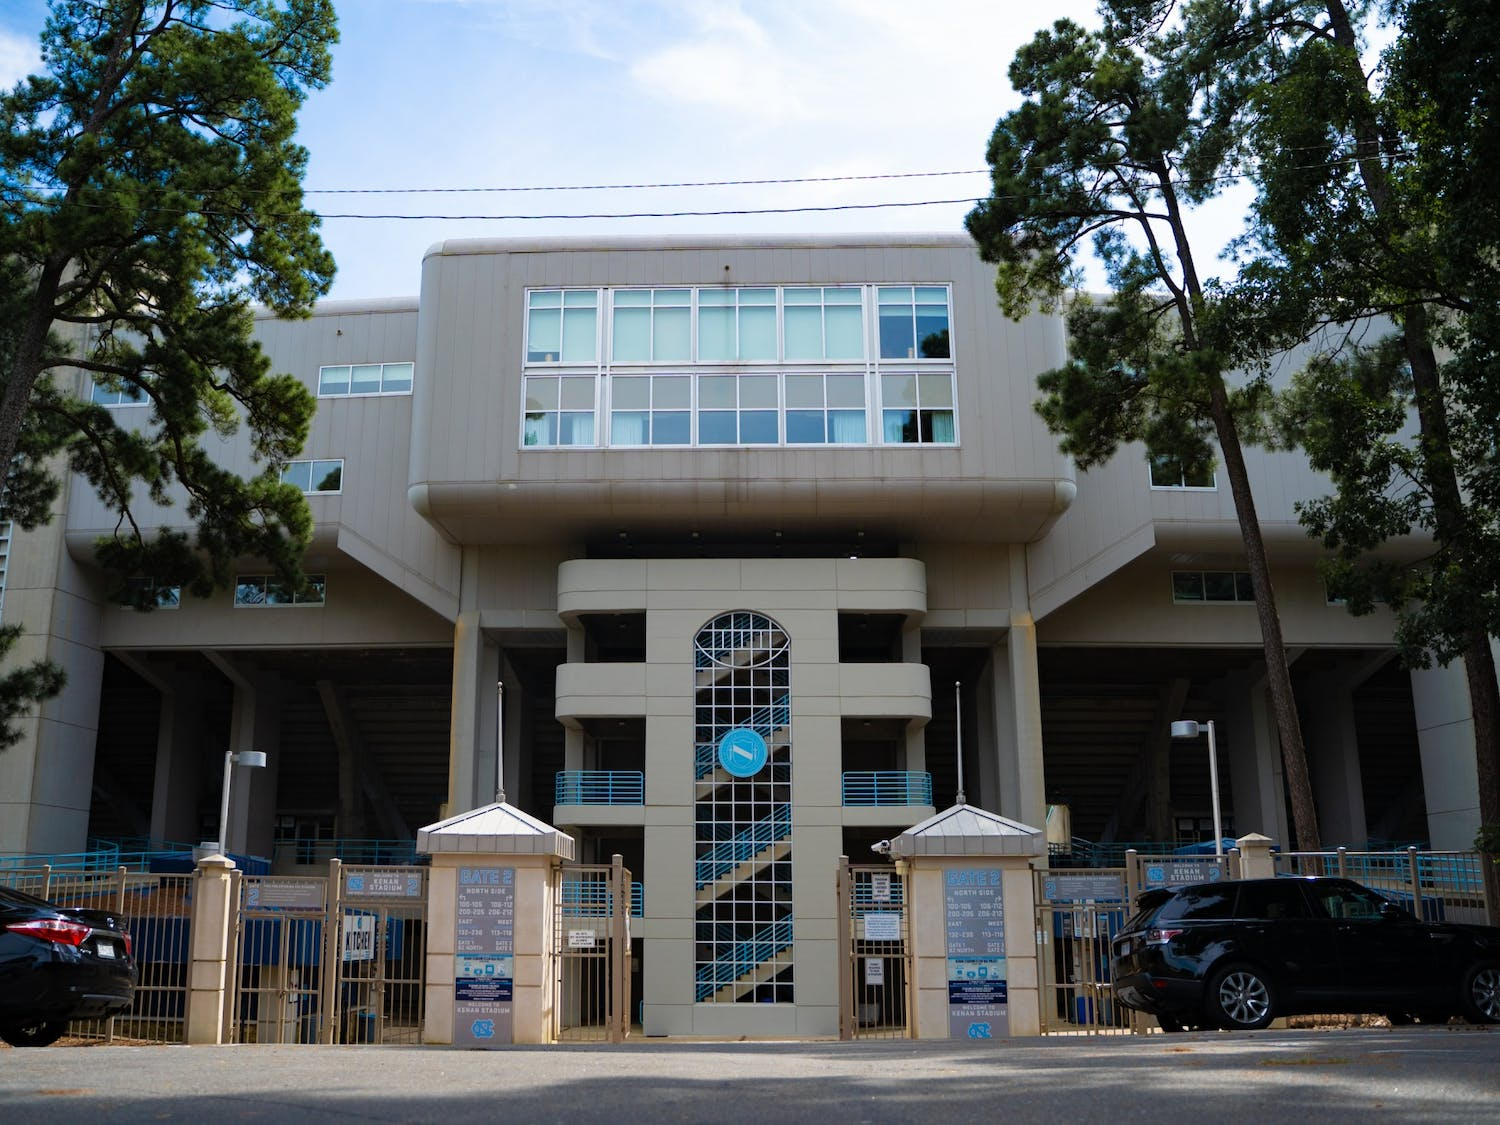 The gates to Kenan Football Stadium as pictured on Tuesday, Aug. 18, 2020.